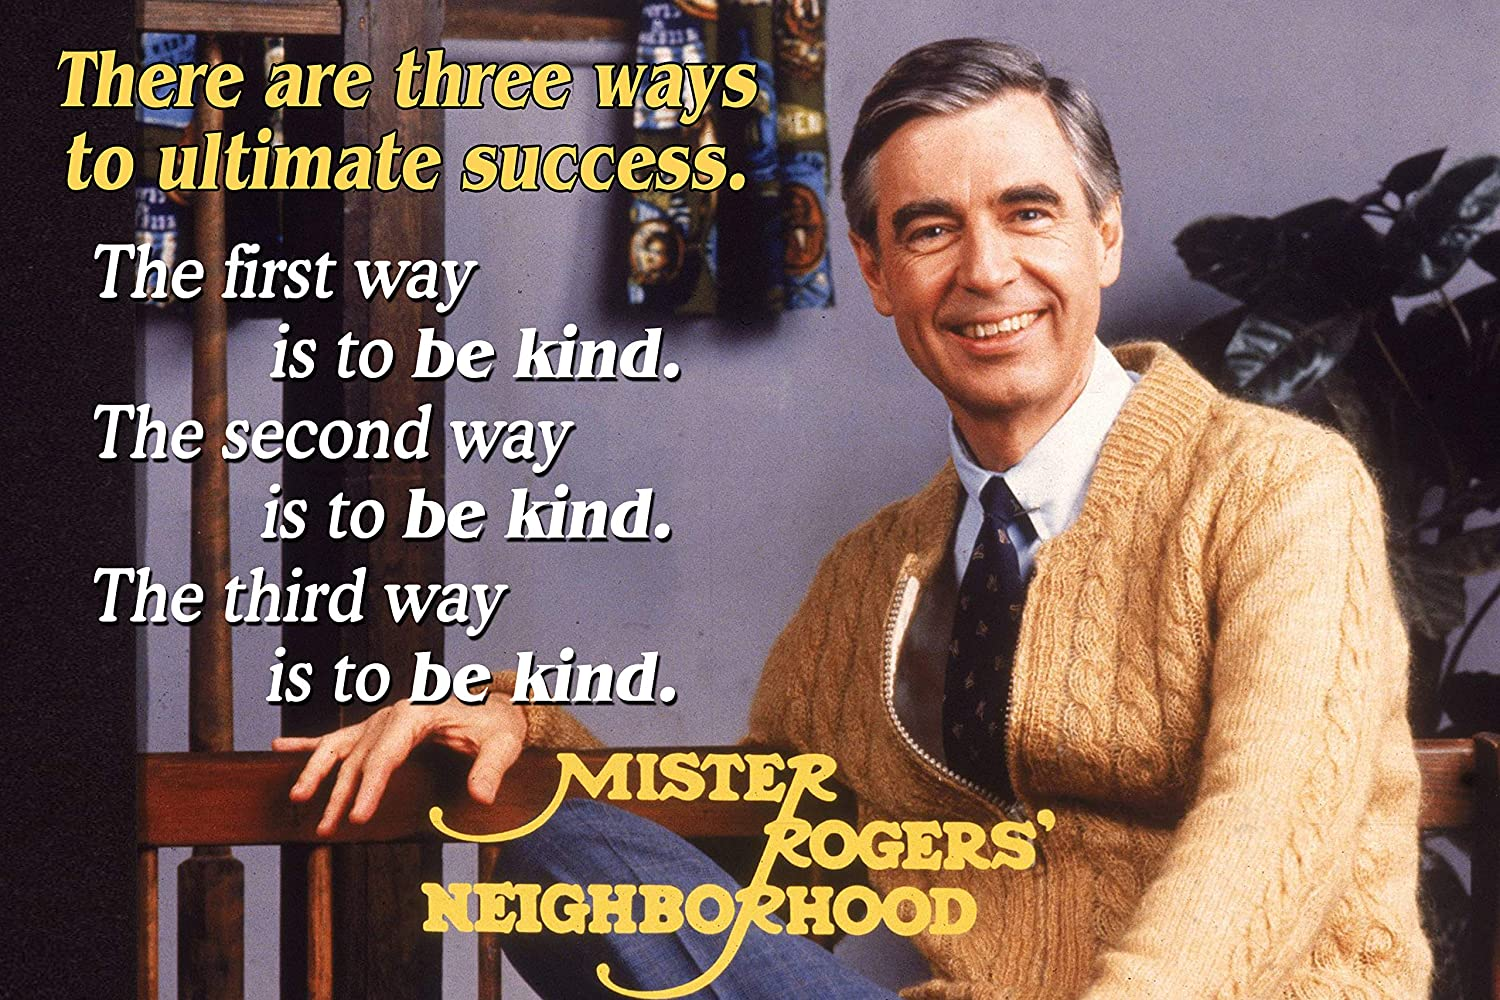 Amazon Com Mr Rogers Neighborhood Quote Poster Growth Mindset Decor Teaching Kids Kindness Classroom Inspirational Posters Education School Classrooms Quotes Wall Art Decor Supplies Elementary Teacher P049 Home Kitchen